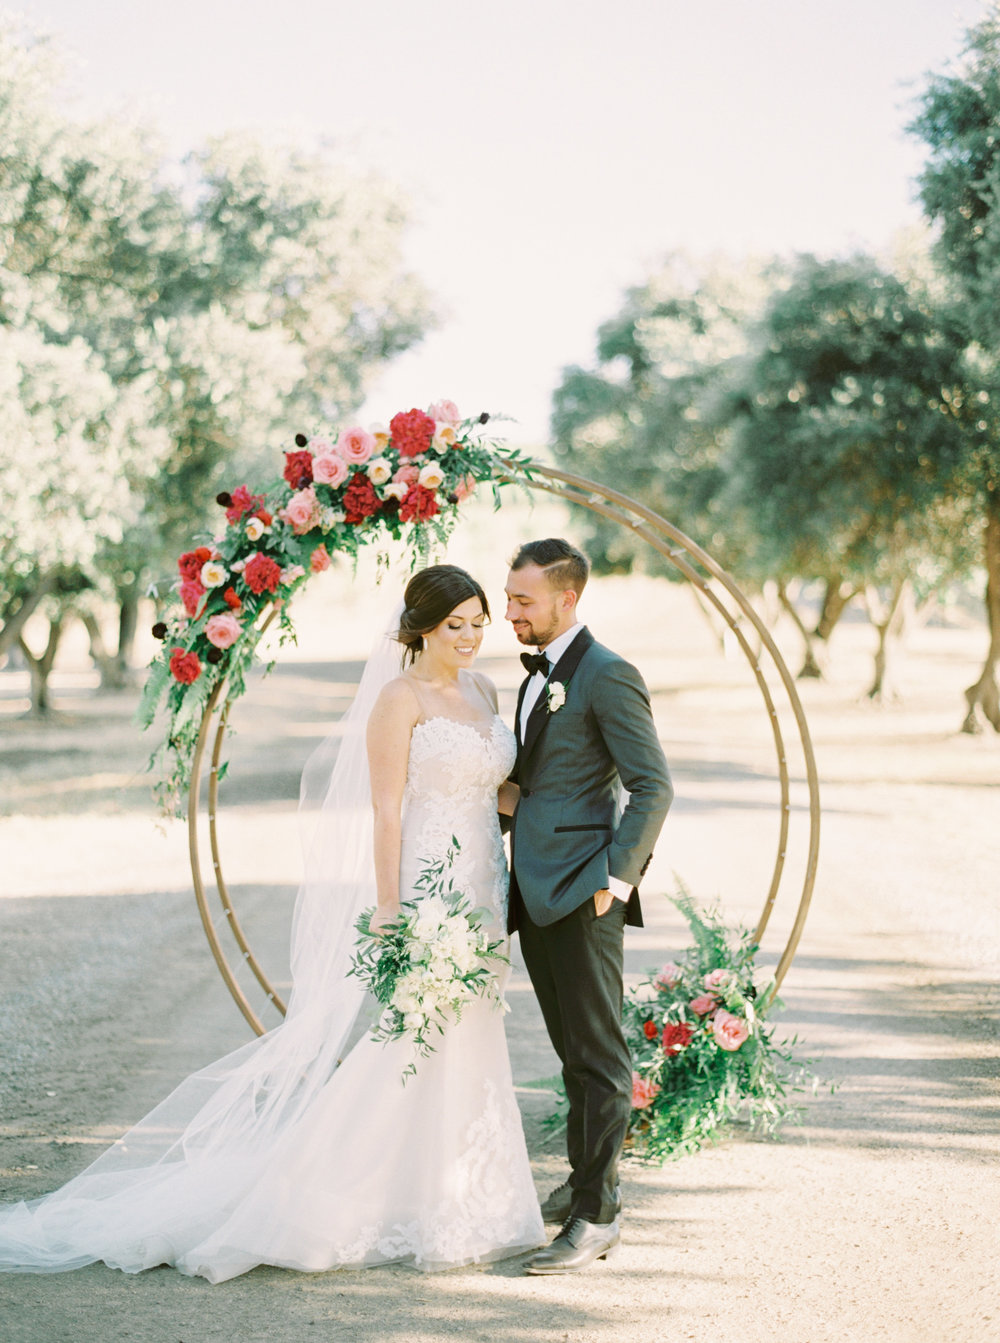 Wente Wedding featured on RuffledBlog - https://ruffledblog.com/modern-vineyard-wedding-whimsical-burgundy/